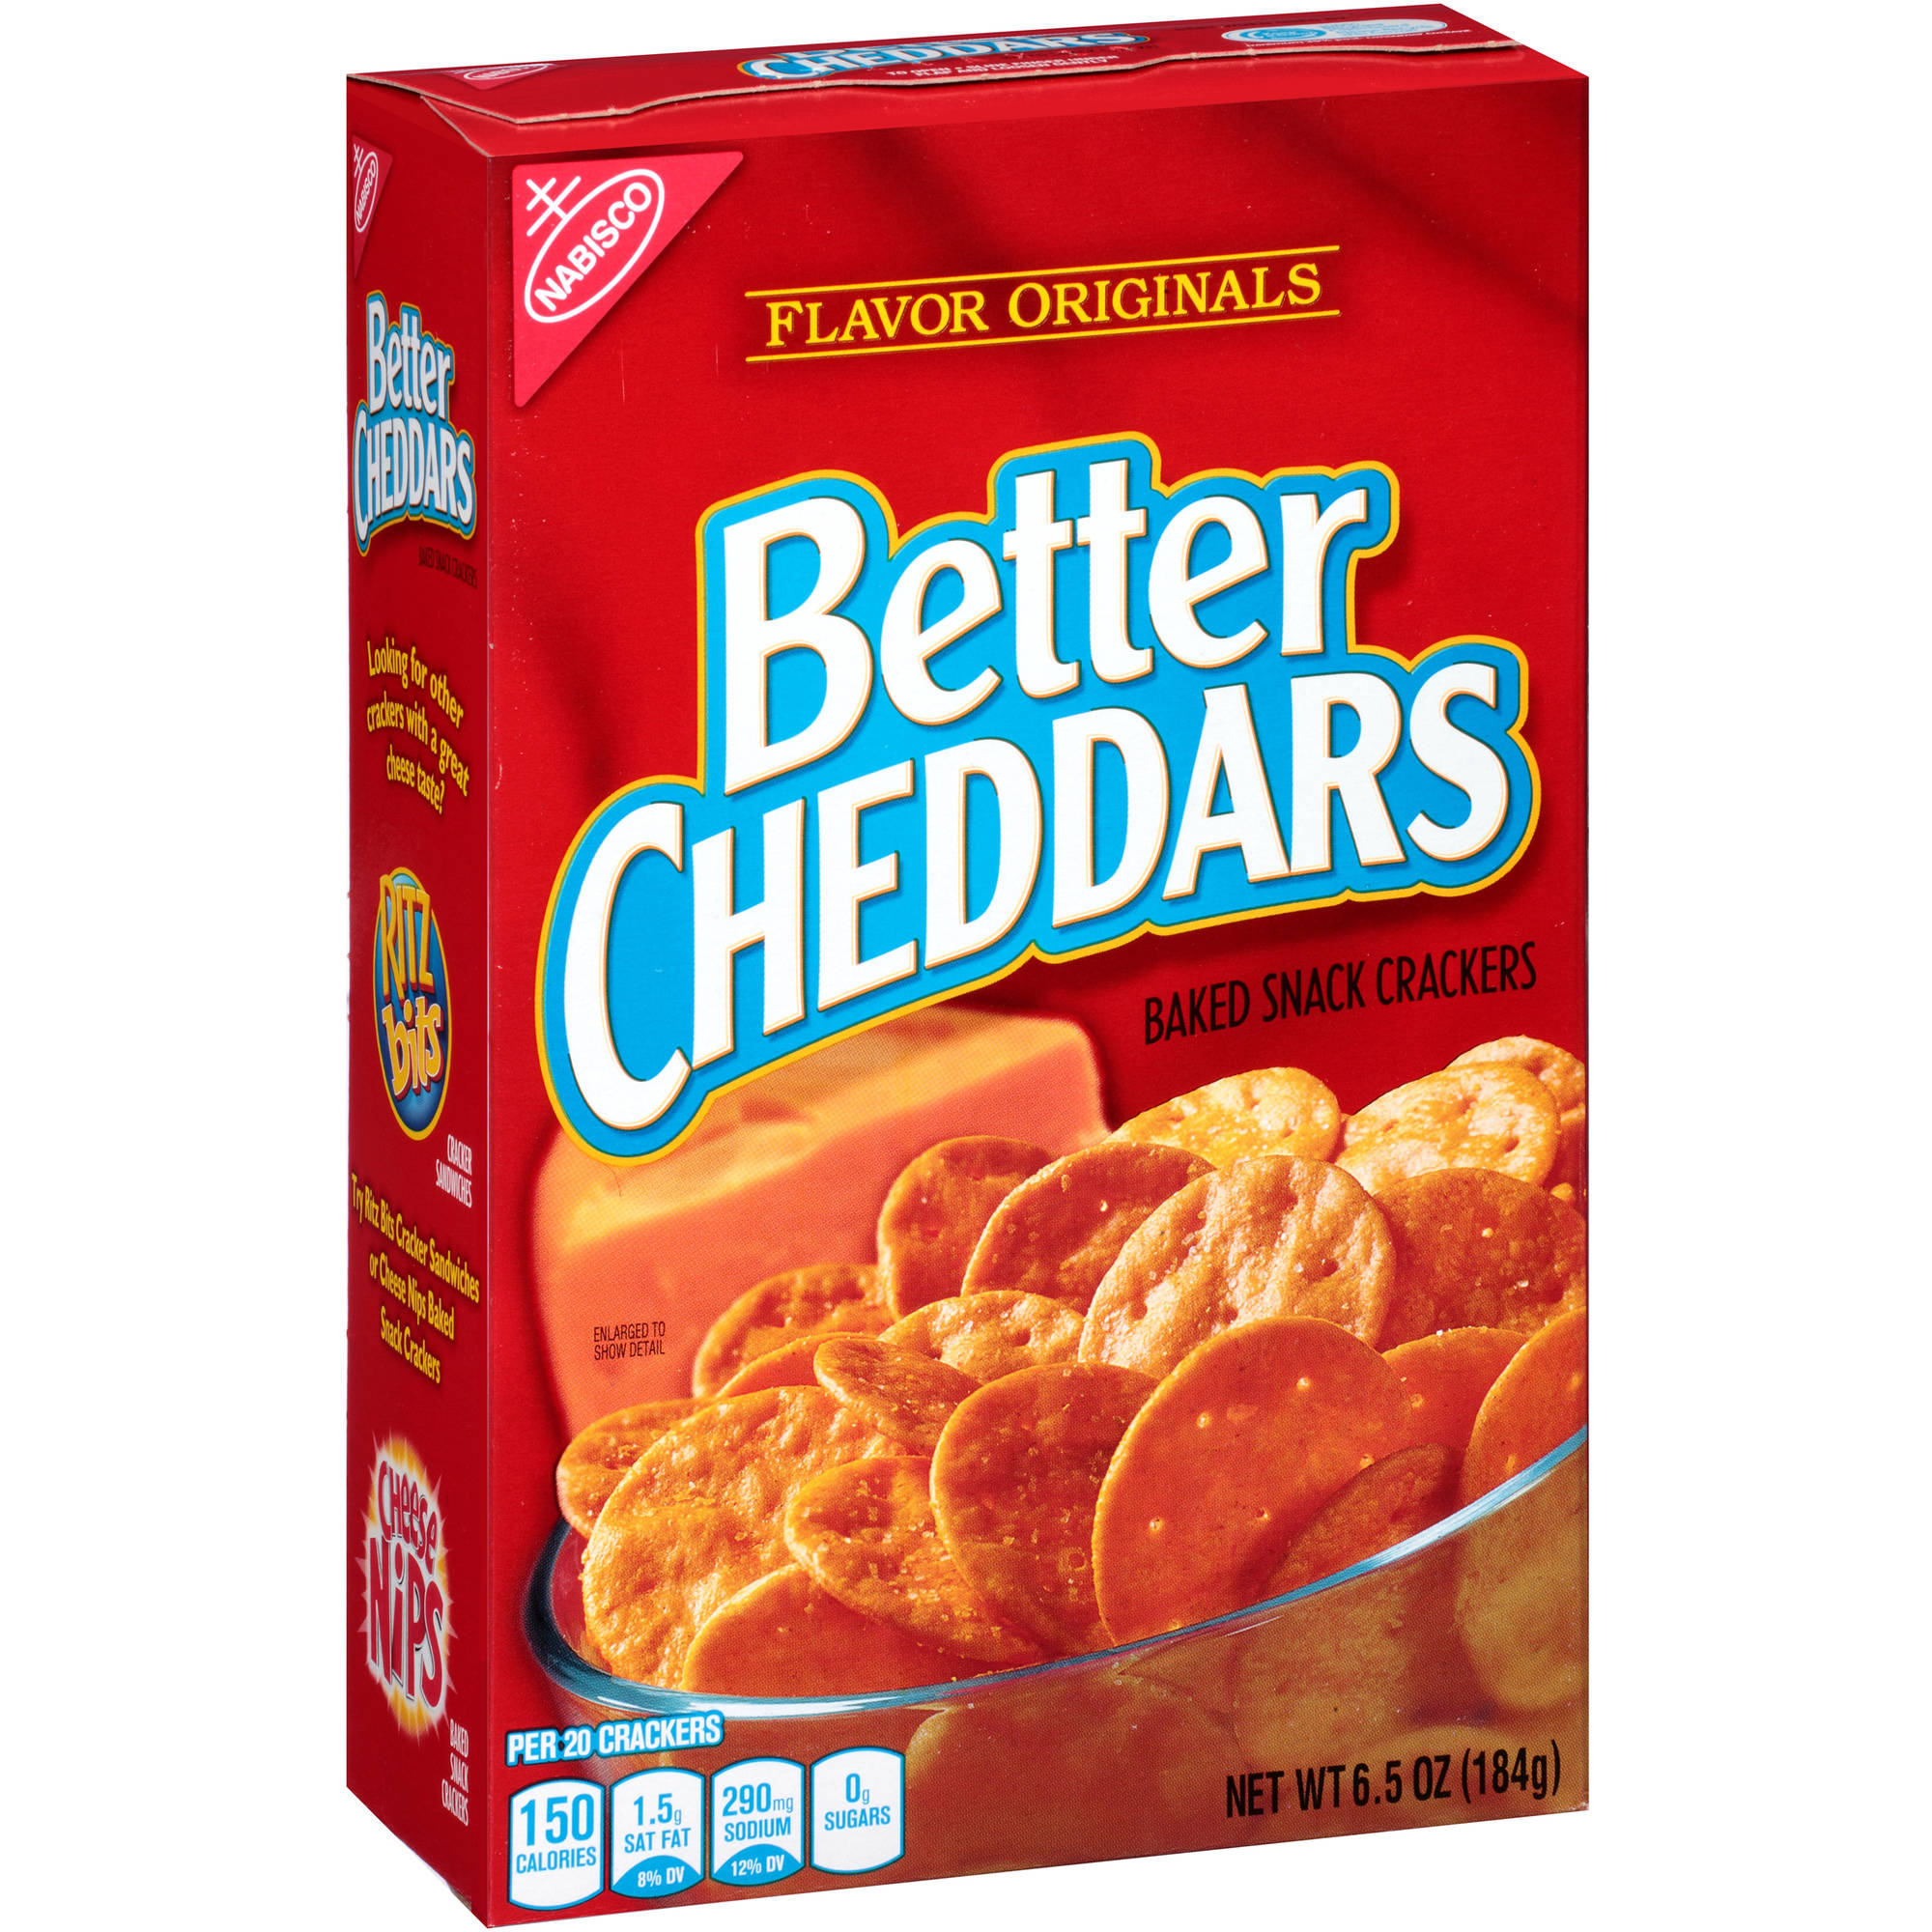 Nabisco Flavor Originals Better Cheddars Baked Snack Crackers, 6.5